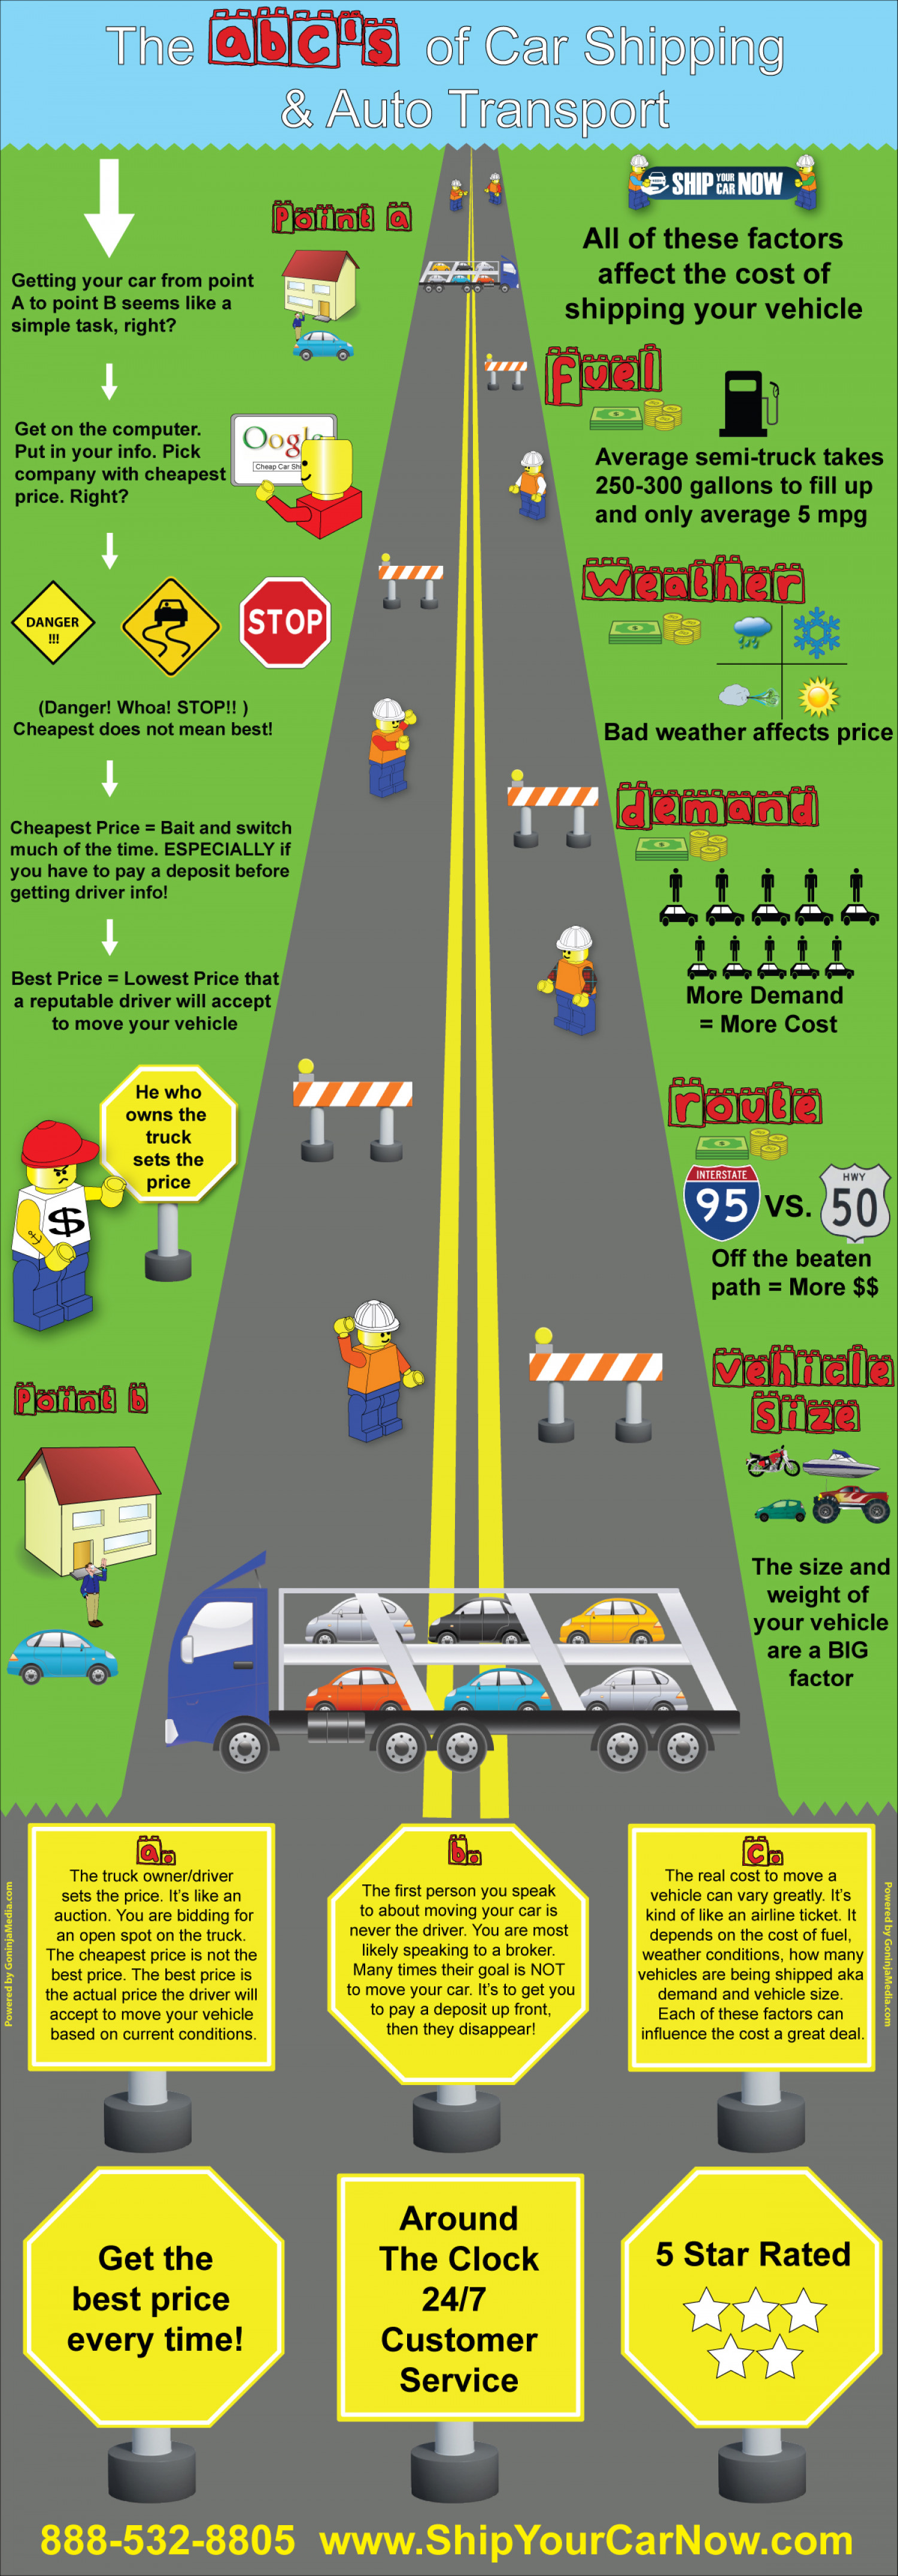 The ABCs of Car Shipping and Auto Transport Infographic